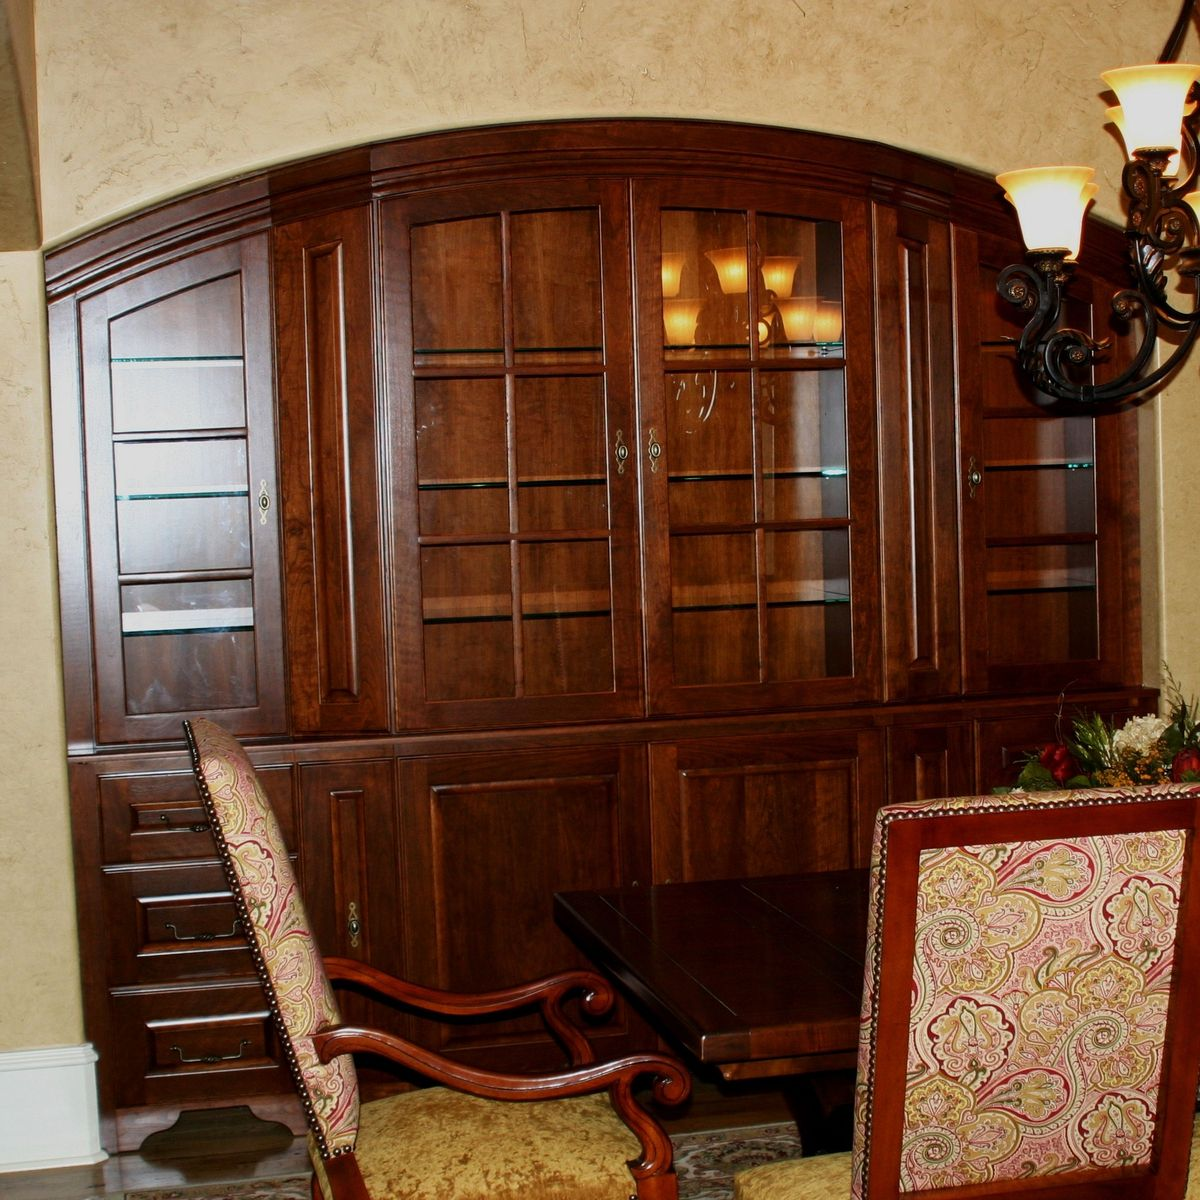 Dining Room Cabinets Ideas: Custom Cherry Dining Room China Cabinet By Carolina Wood